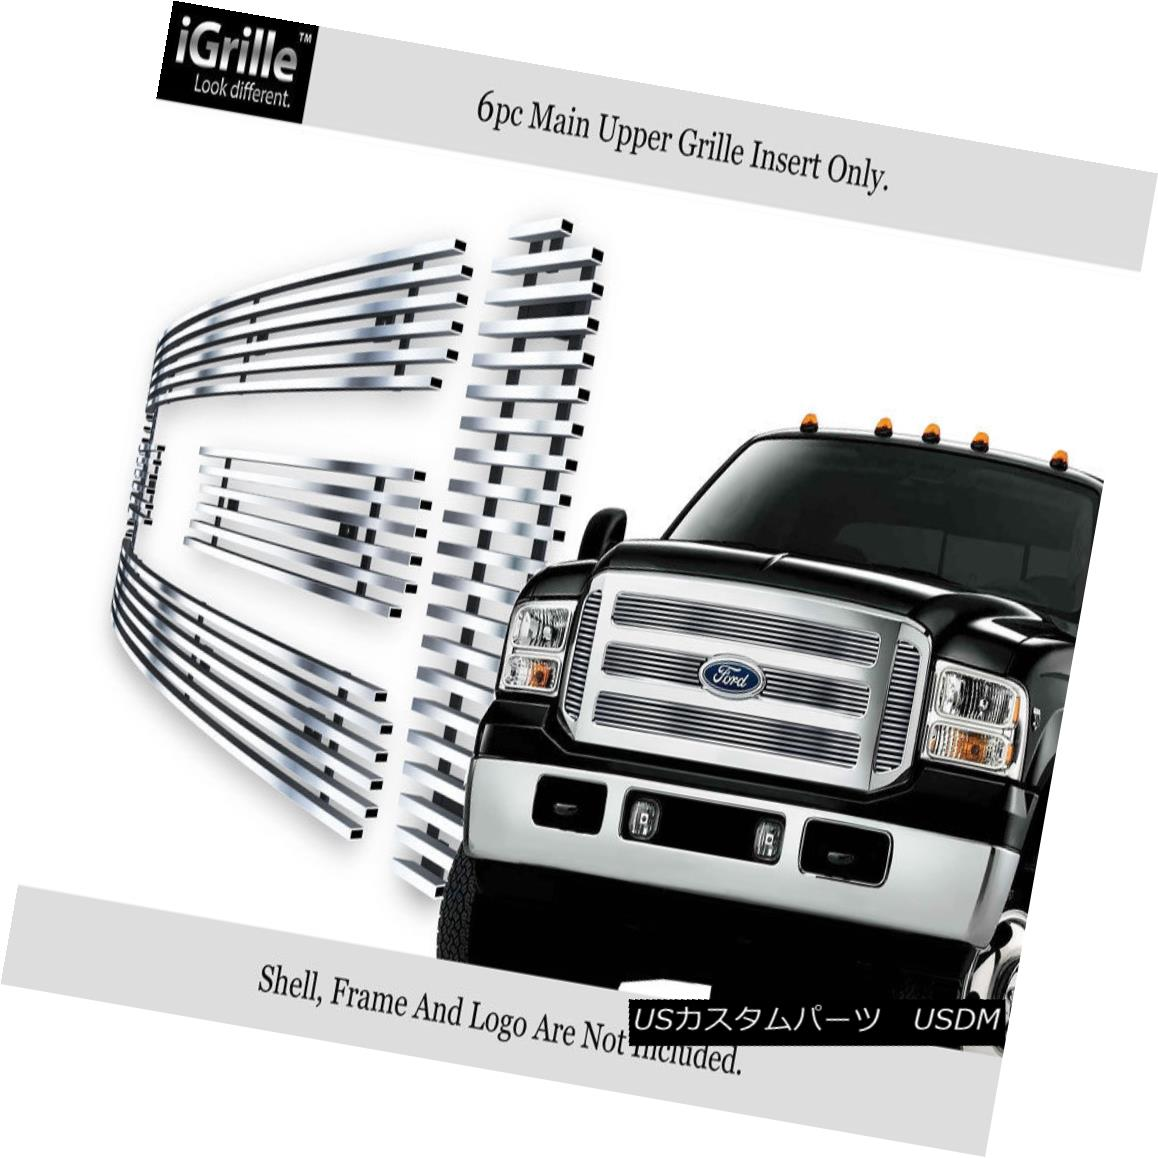 USグリル Fits 05-07 Ford F-250/F-350 SD/Excursion Stainless Steel Billet Grille フィット05-07 Ford F-250 / F-350 SD /エクスカーションステンレス鋼ビレットグリル